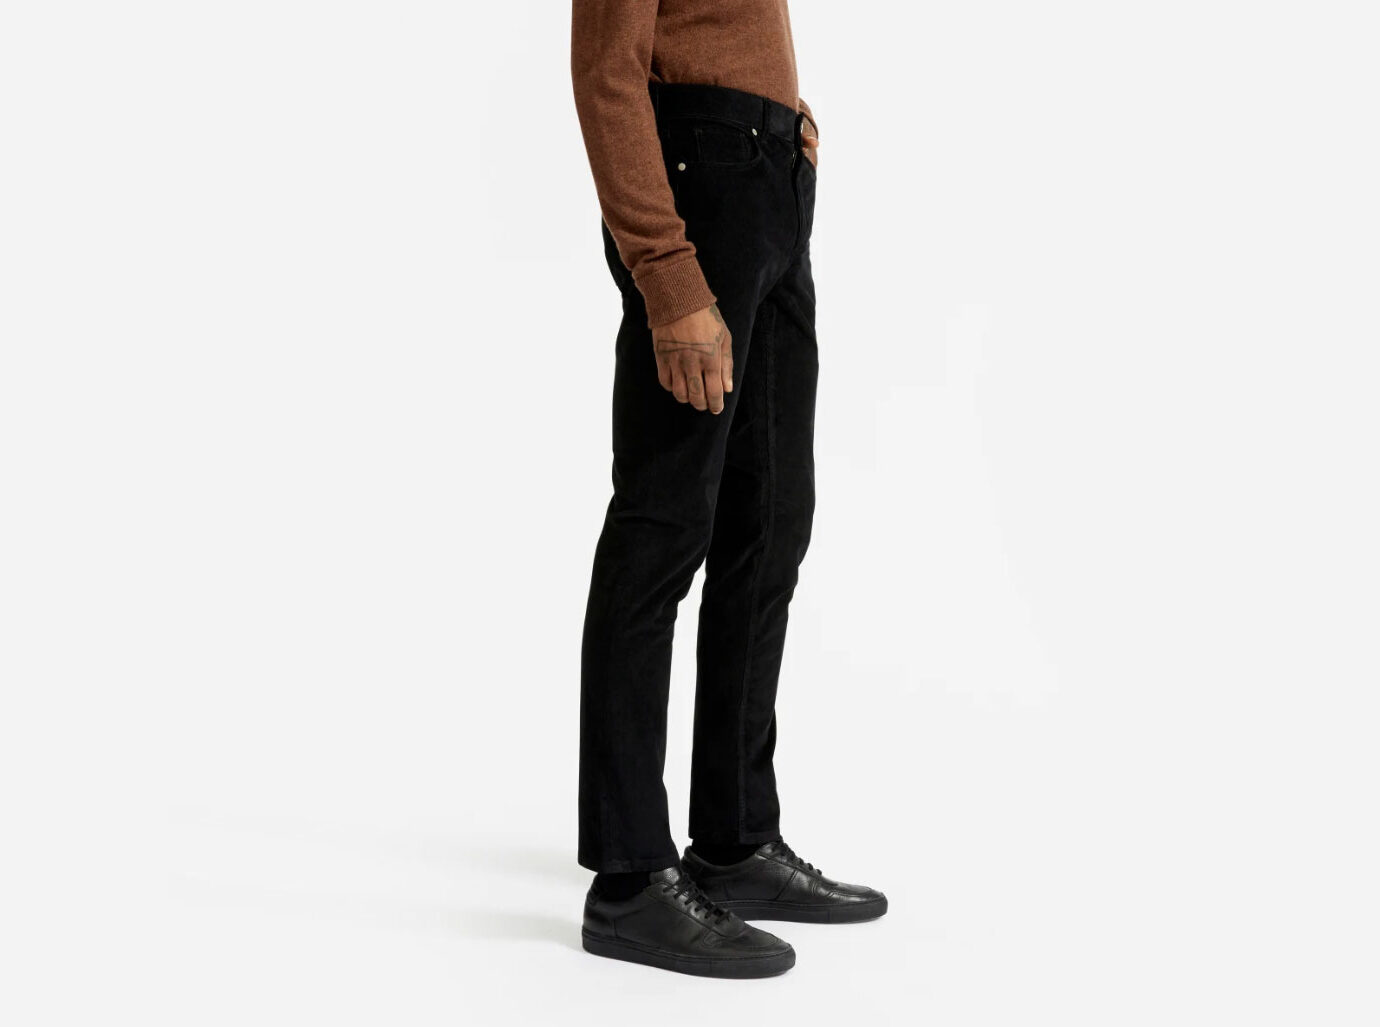 The Corduroy 5-Pocket Slim Pant — $68